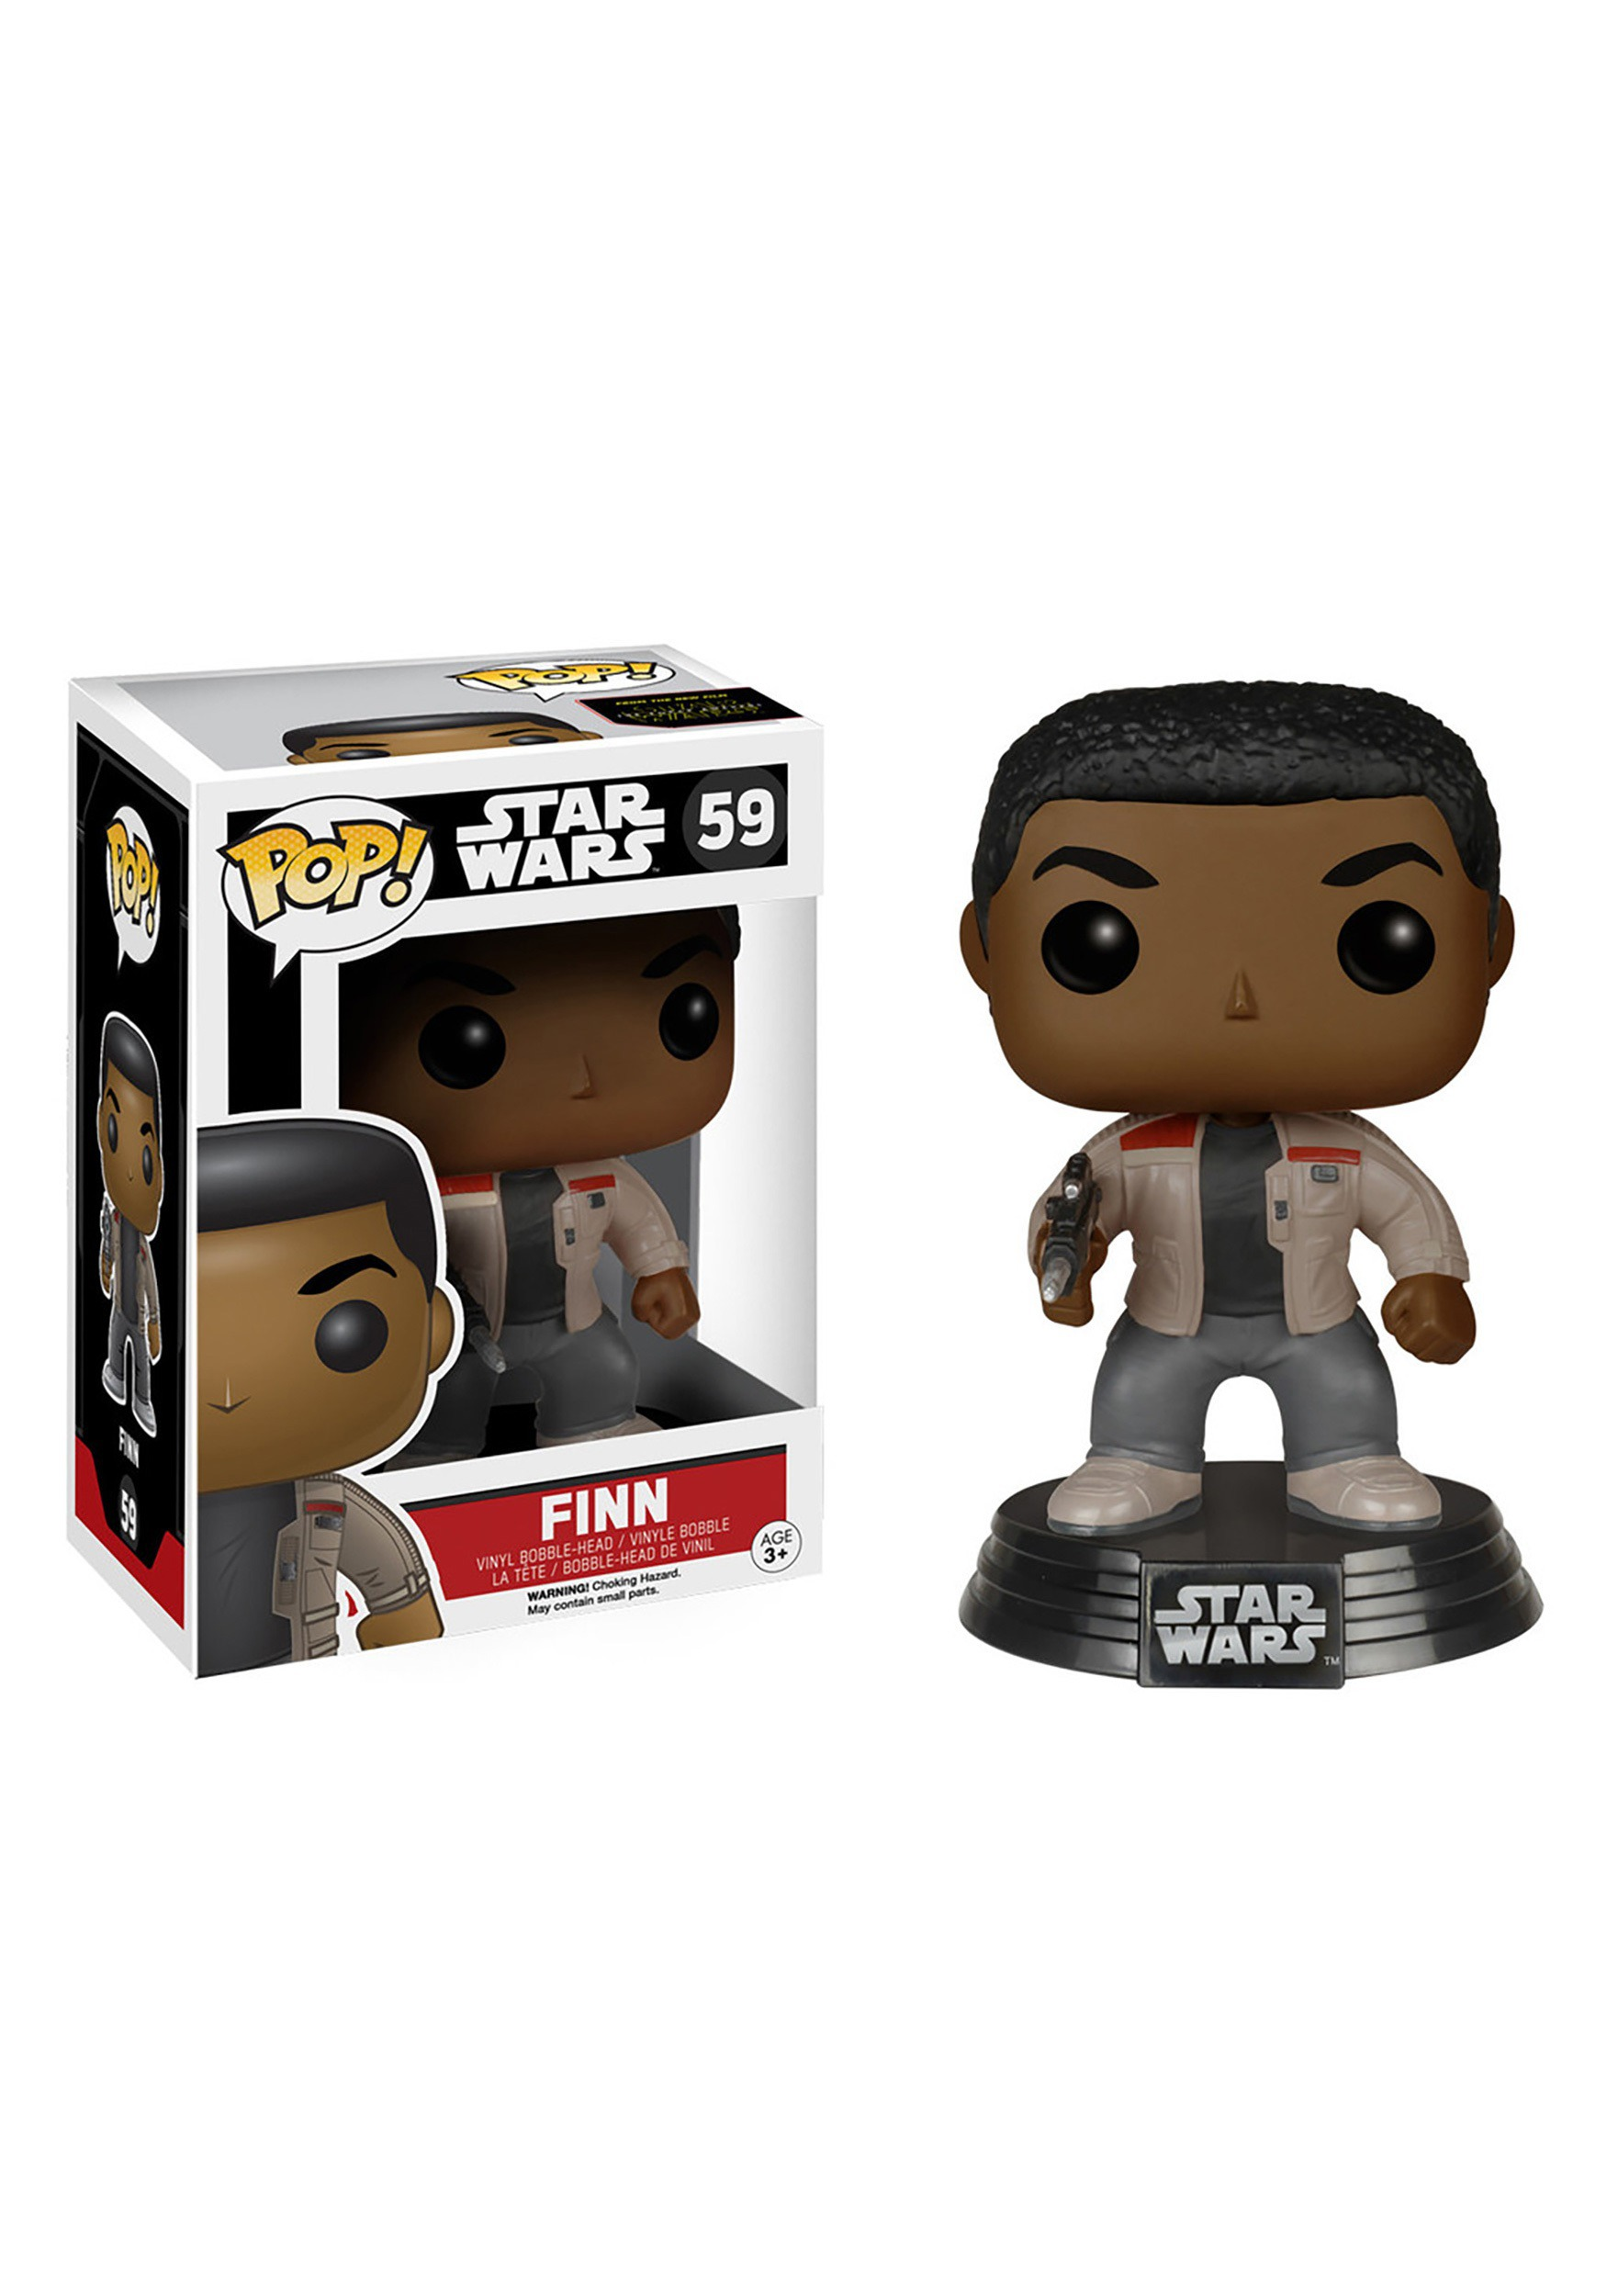 POP! Star Wars E7 Finn Figure FN6221